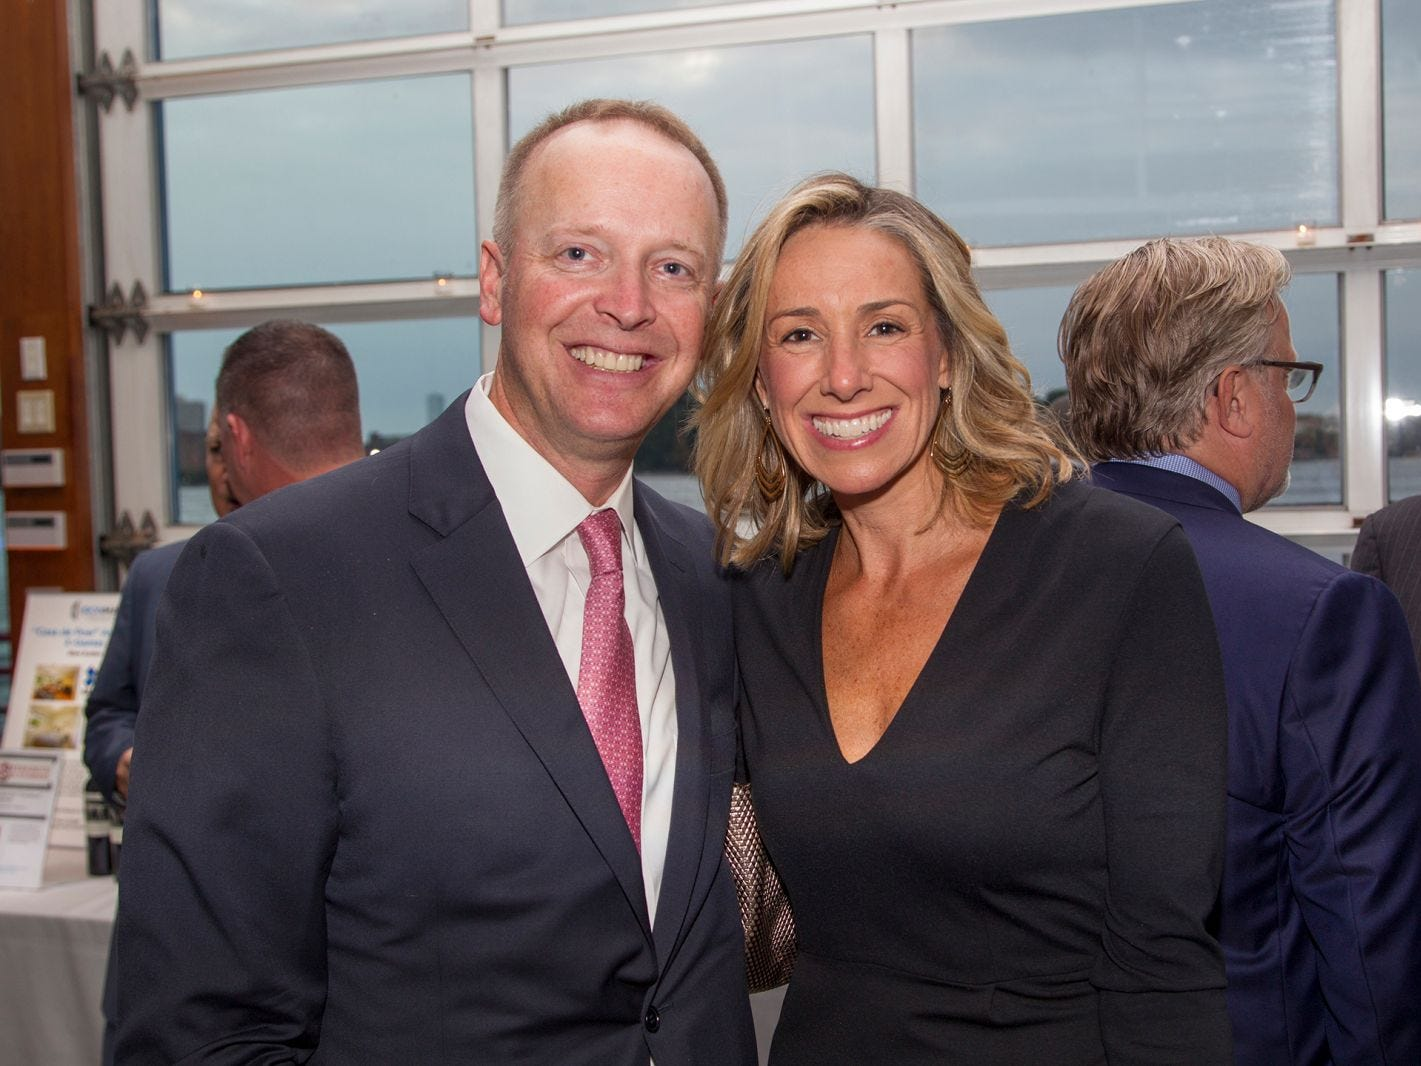 Ted and Bonnie Offerfilge. 11th annual IronMatt Fundraiser Gala at Pier 60 Chelsea Piers. 09/20/2018